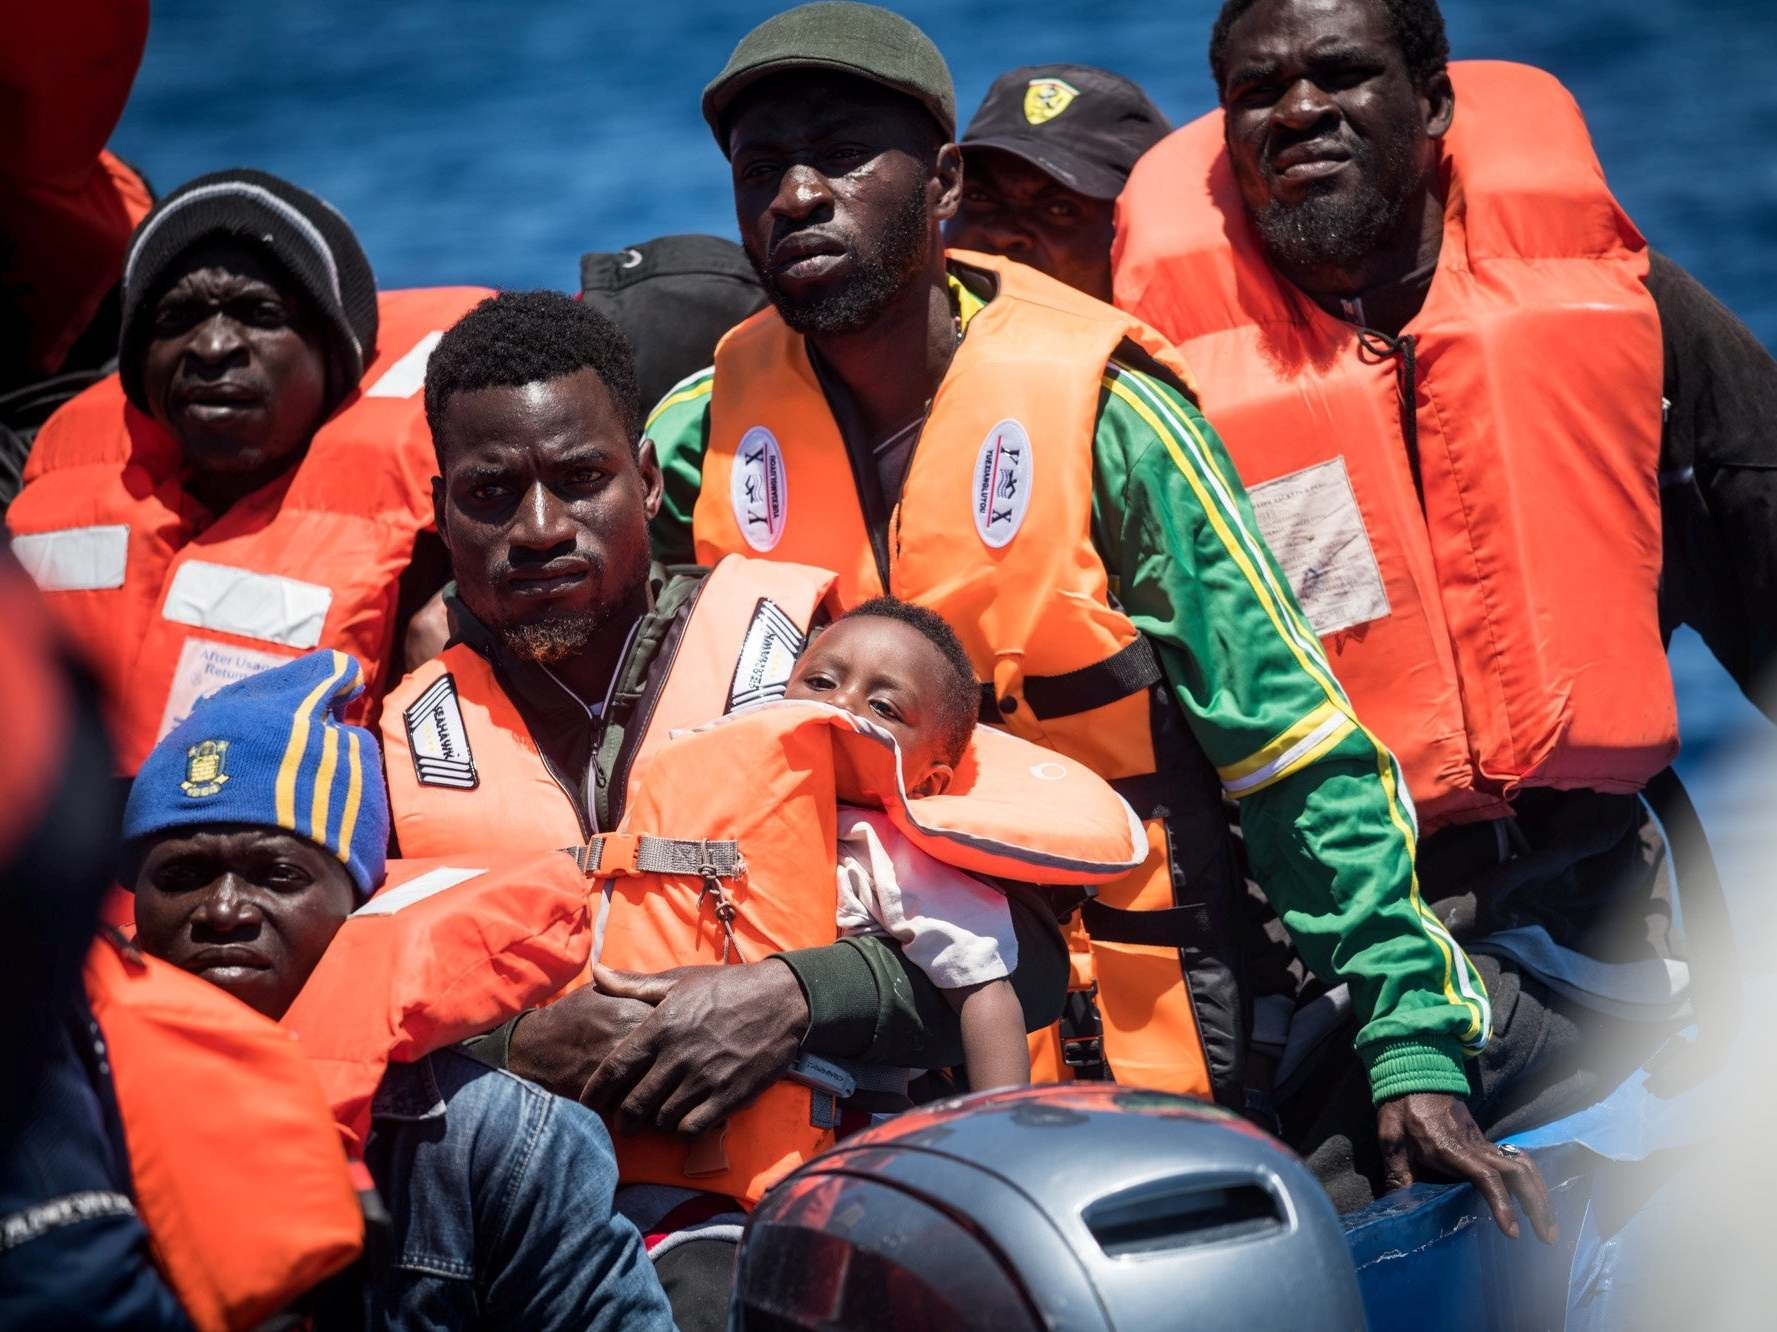 Italy passes law to fine people who rescue refugees at sea